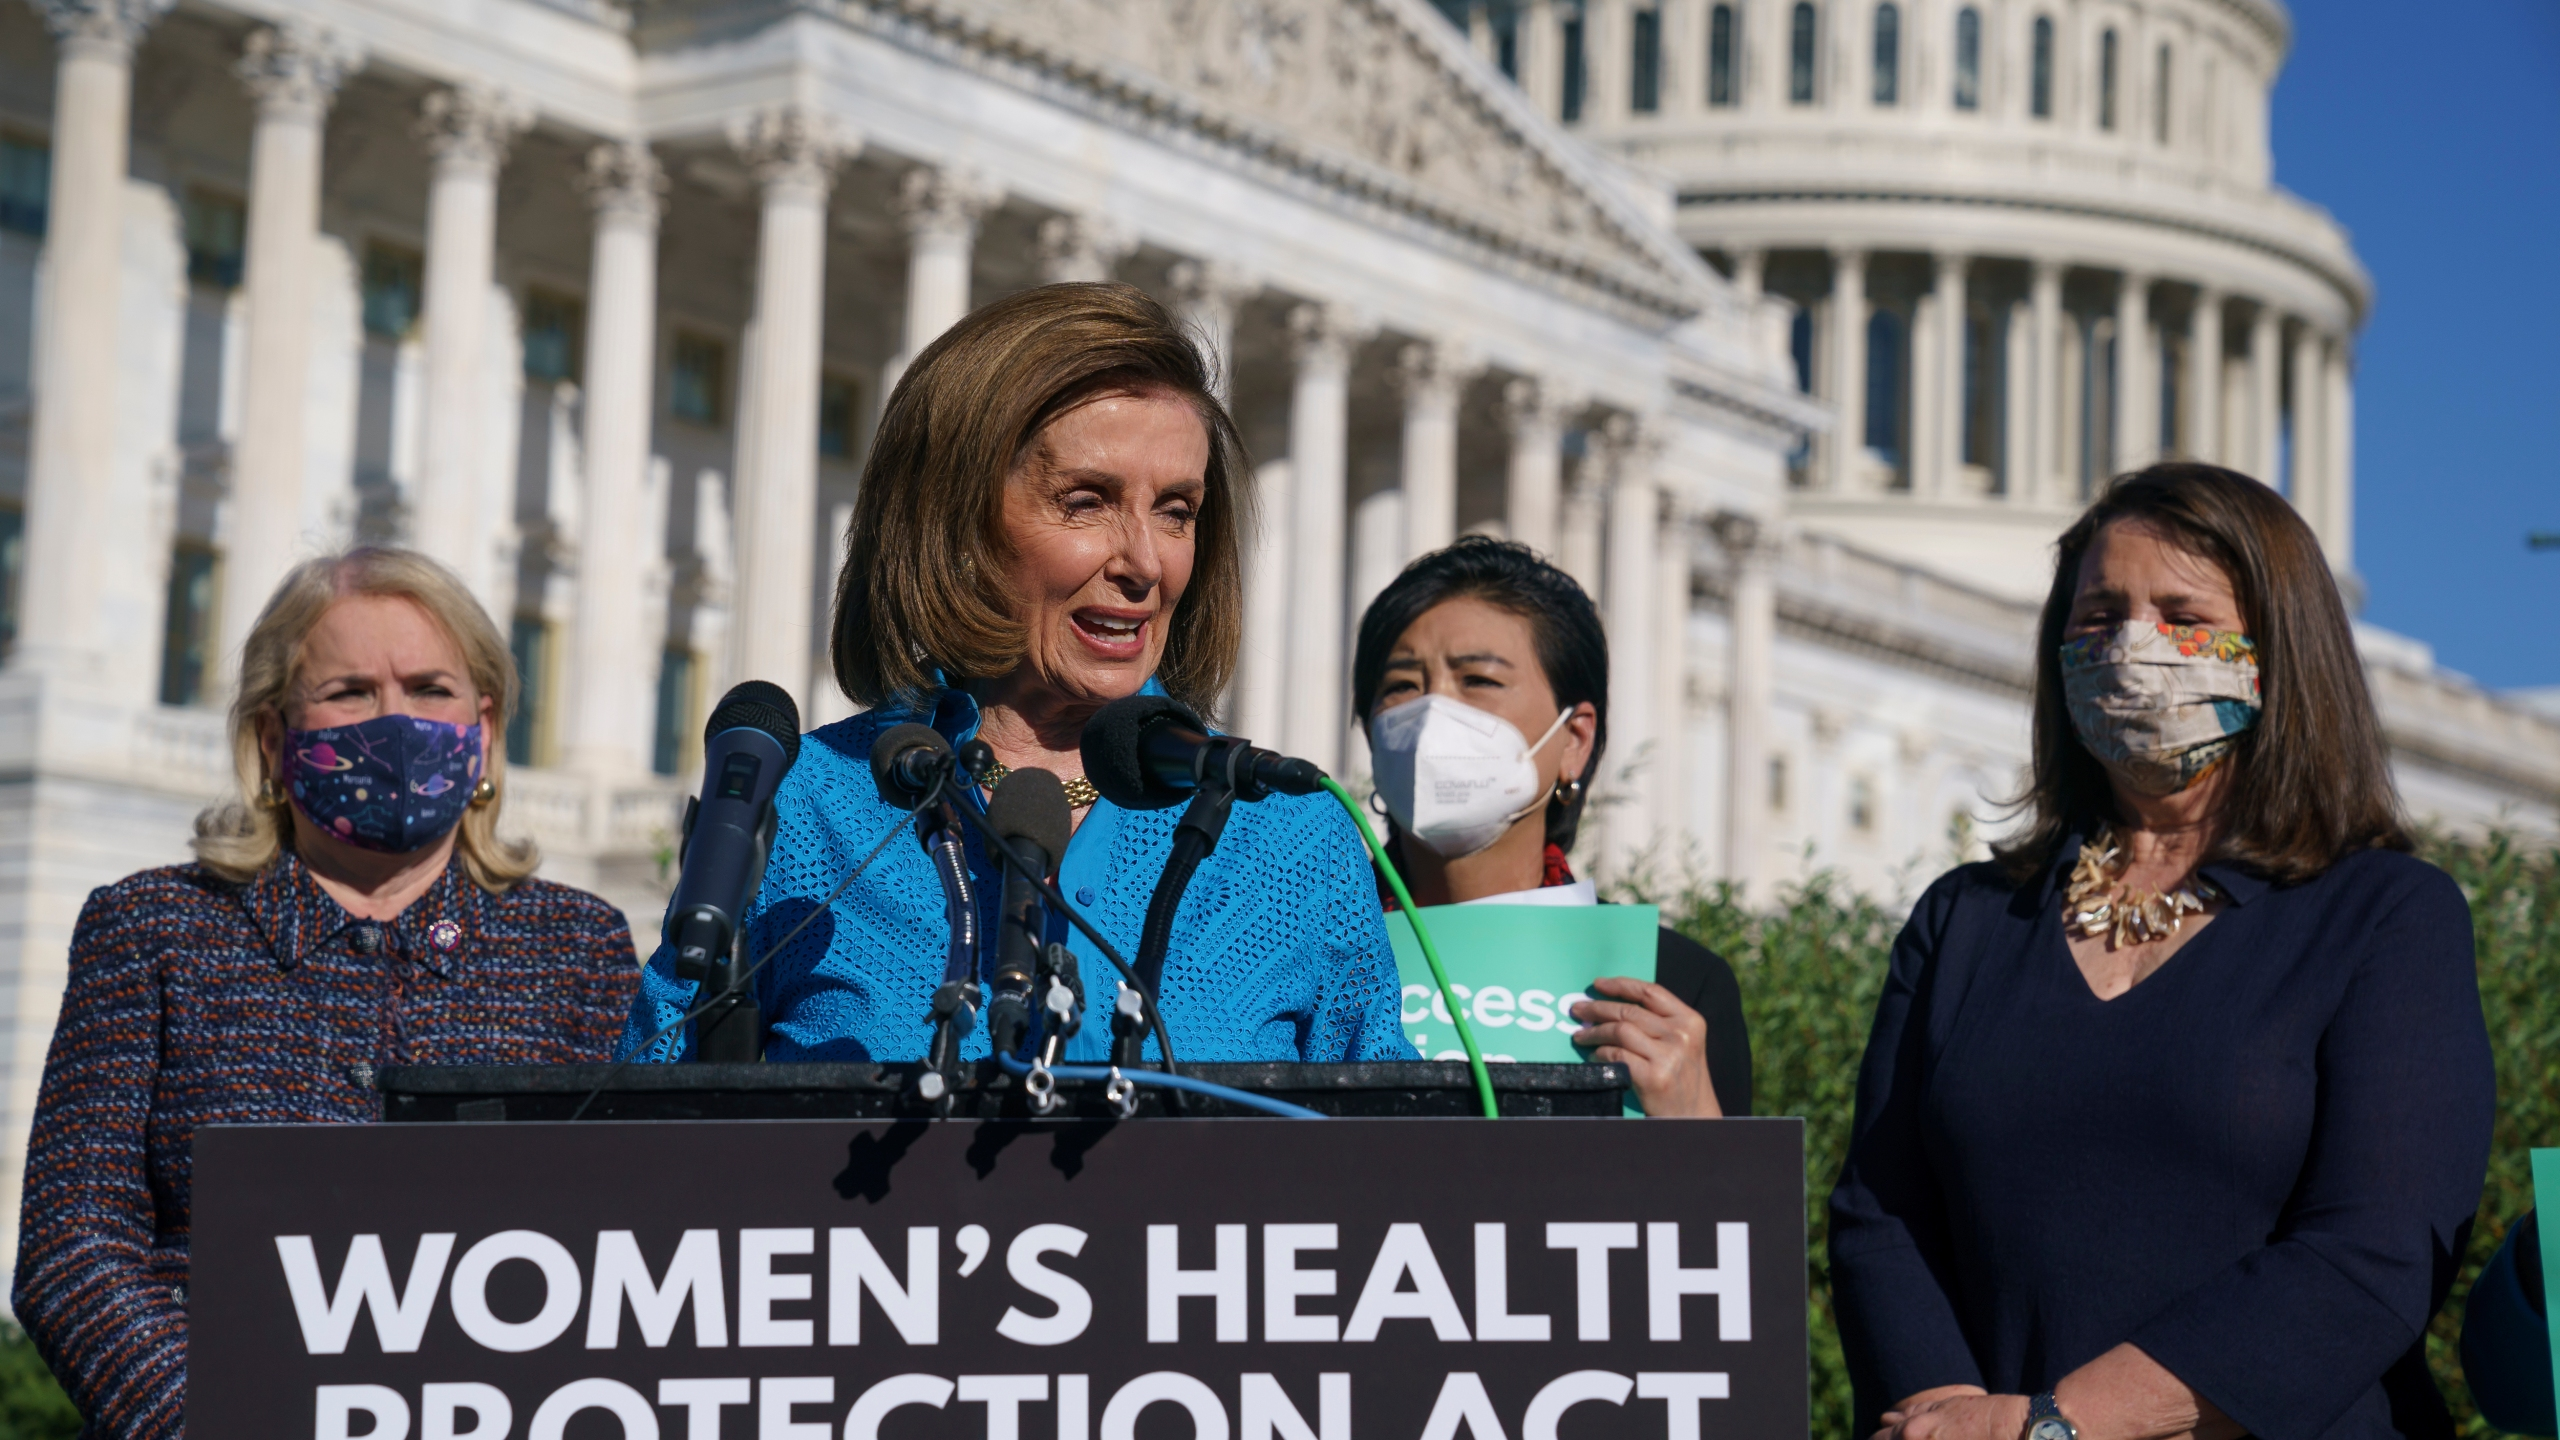 House Speaker Nancy Pelosi, D-Calif., joined from left by Rep. Sylvia Garcia, D-Texas, Rep. Judy Chu, D-Calif., and Rep. Diana DeGette, D-Colo., holds a news conference just before a House vote on legislation aimed at guaranteeing a woman's right to an abortion, an effort by House Democrats to circumvent a new Texas law that has placed that access under threat, at the Capitol in Washington, Friday, Sept. 24, 2021. (AP Photo/J. Scott Applewhite)